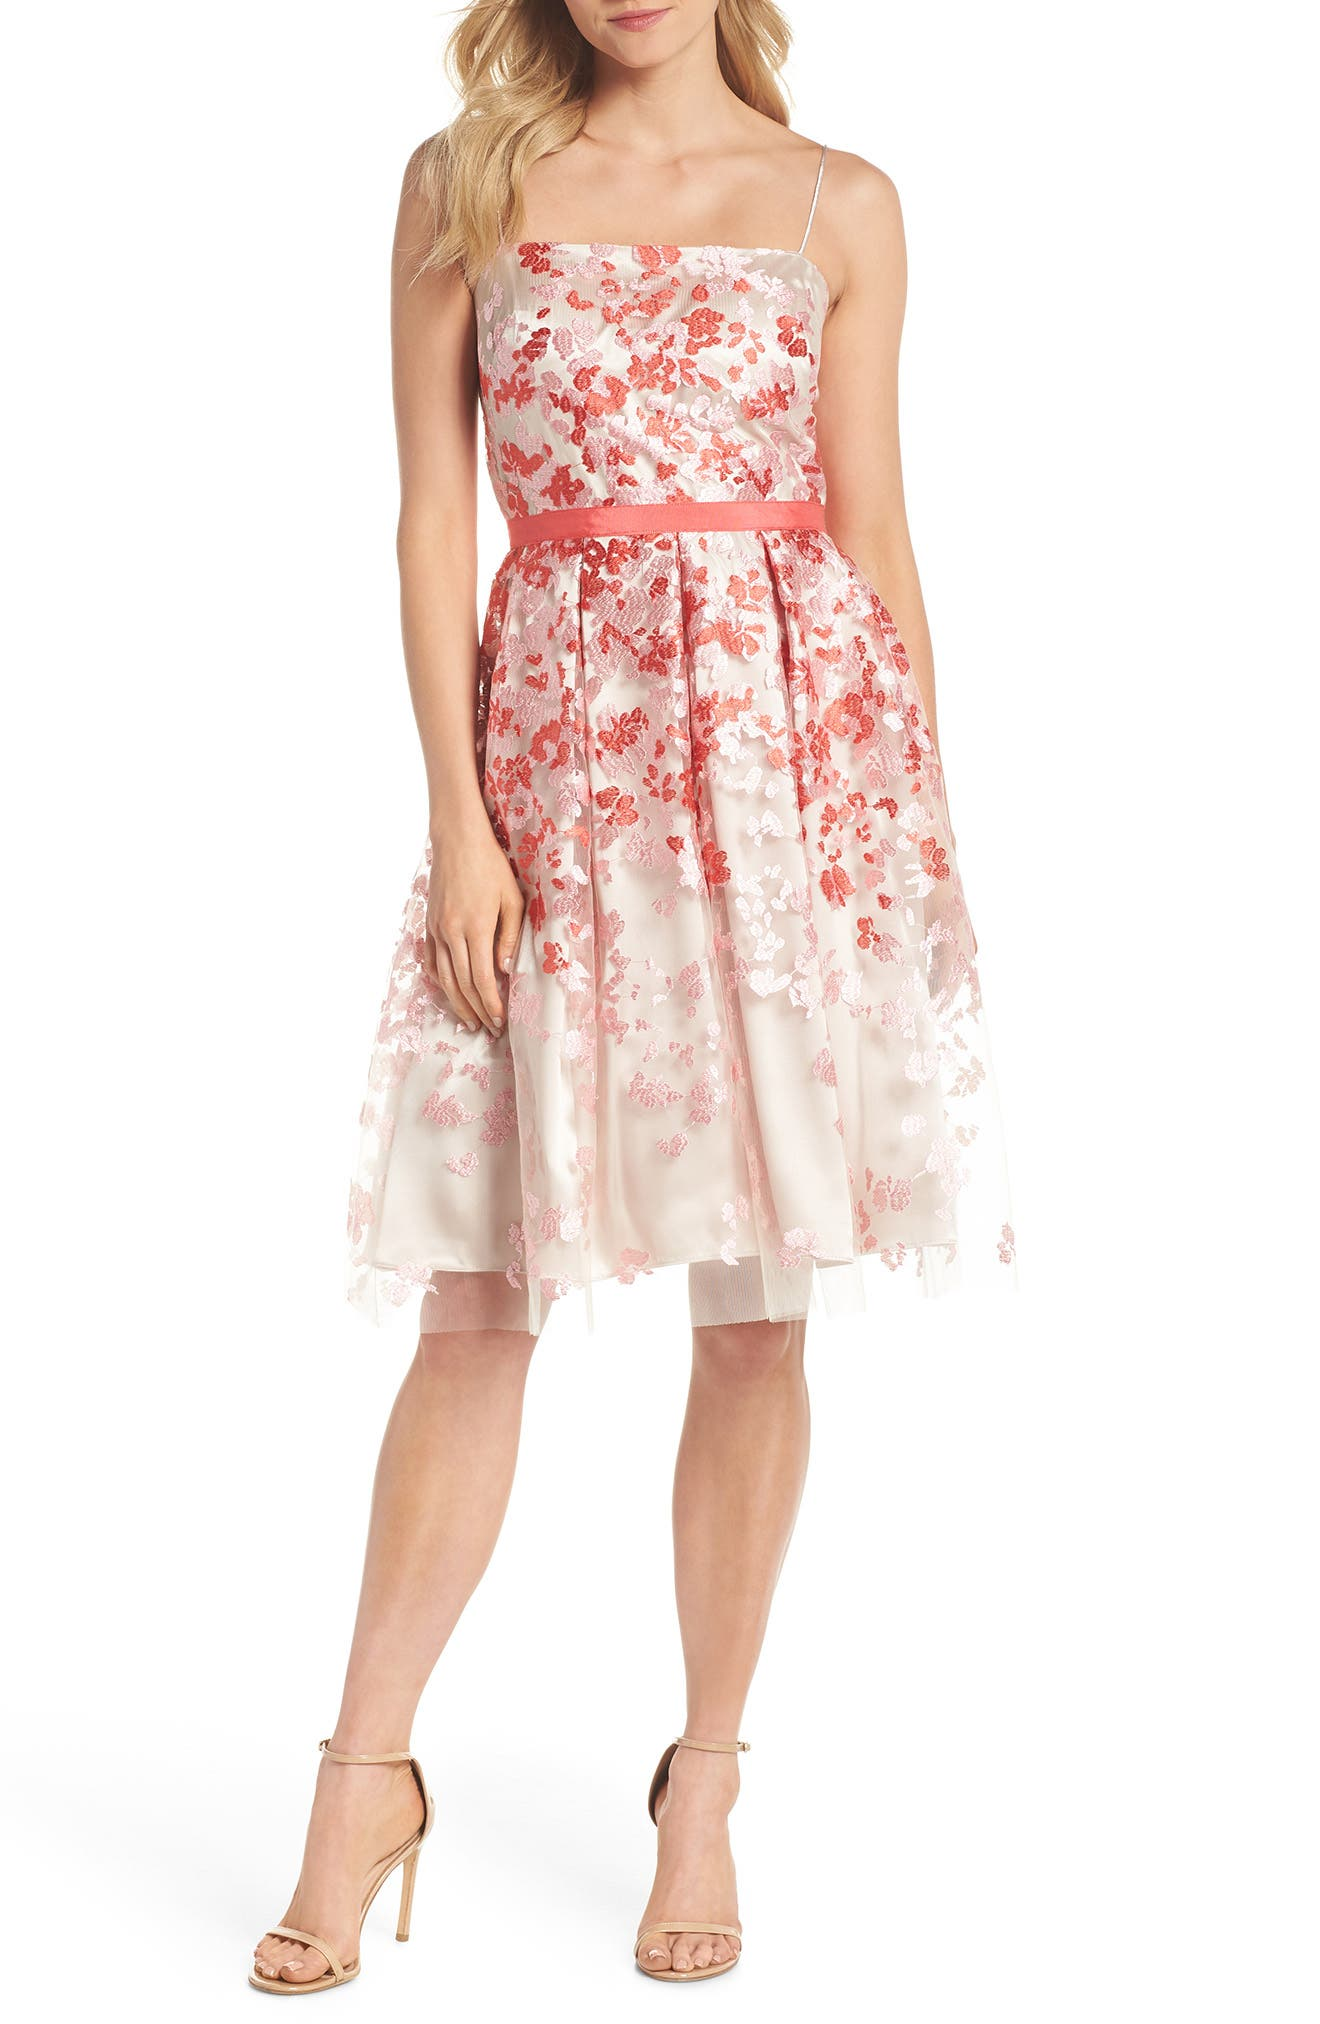 Embroidered Fit & Flare Cocktail Dress,                             Main thumbnail 1, color,                             653